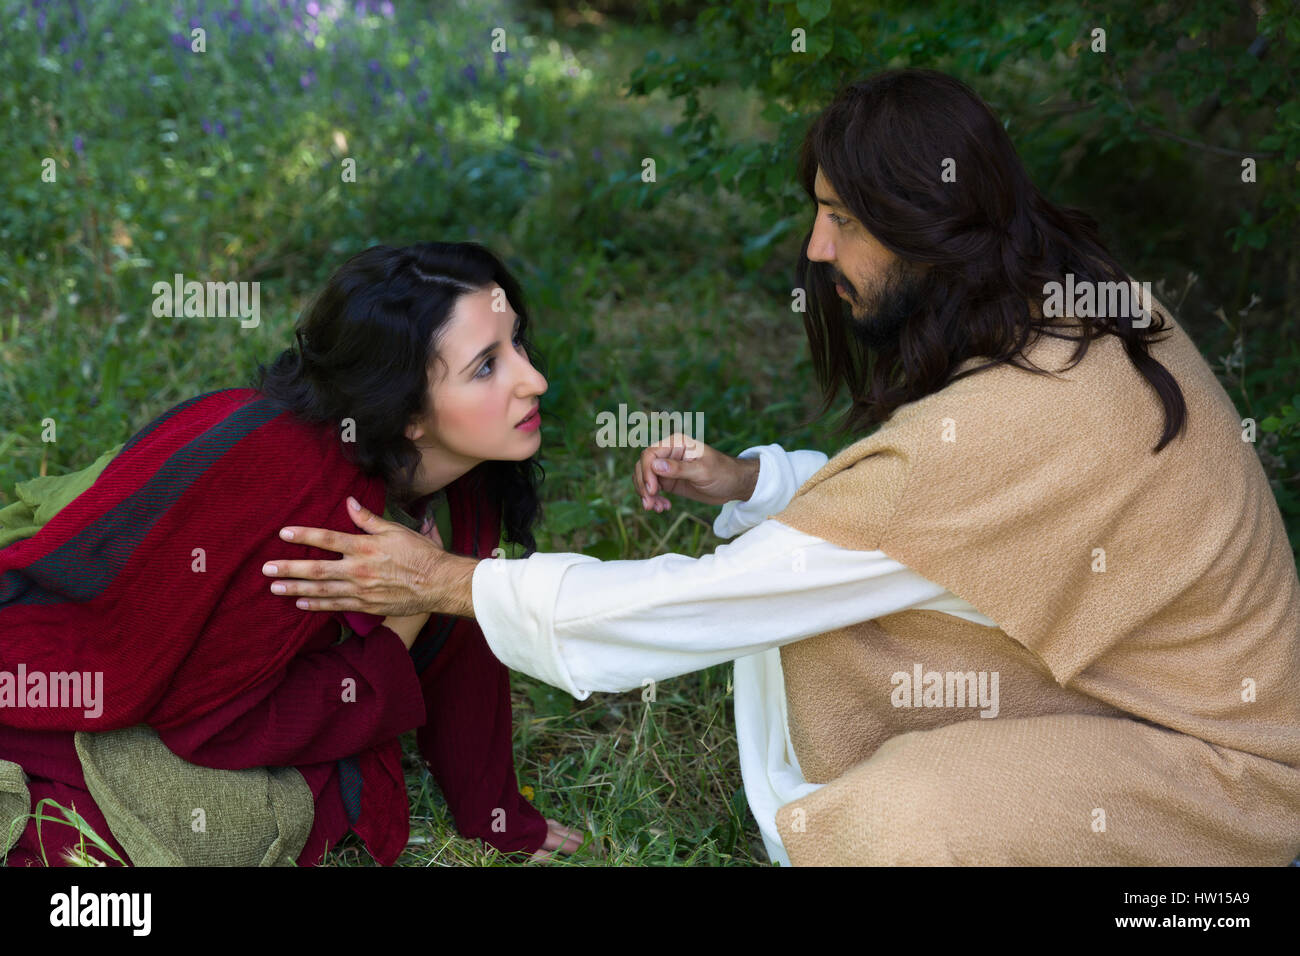 Repentant sinner woman touching the robe of Jesus, asking for forgiveness and healing - Stock Image